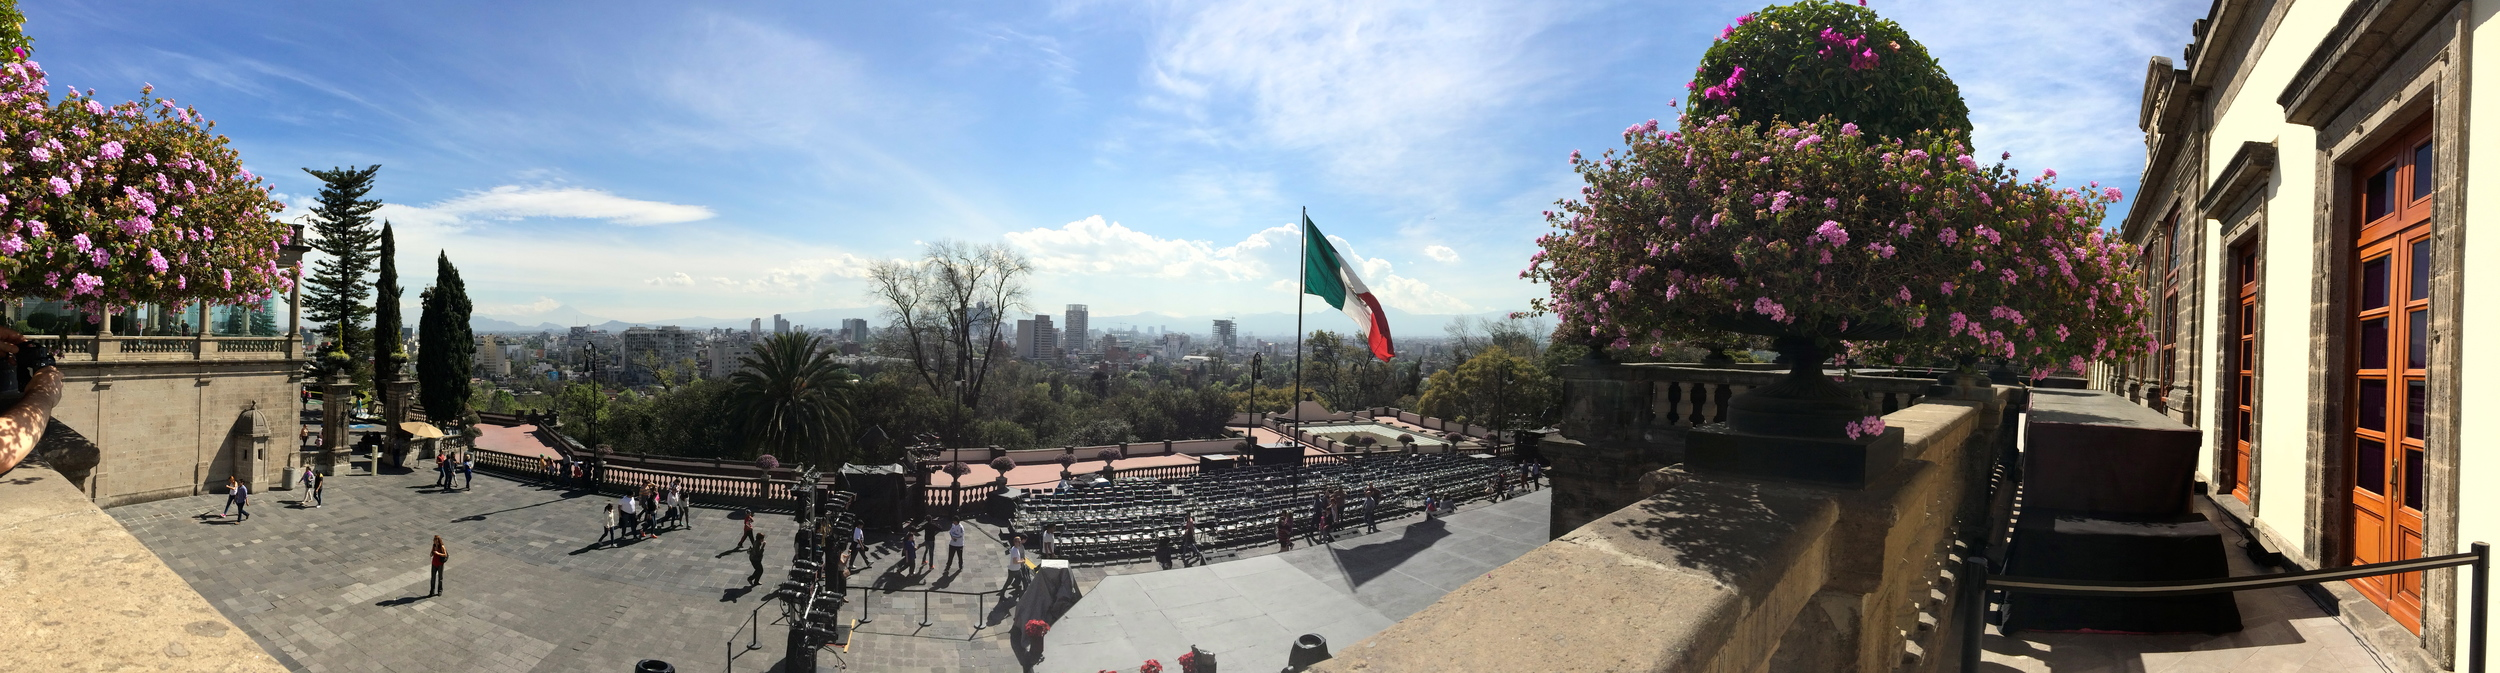 Mexico City - Castillo de Chapultepec